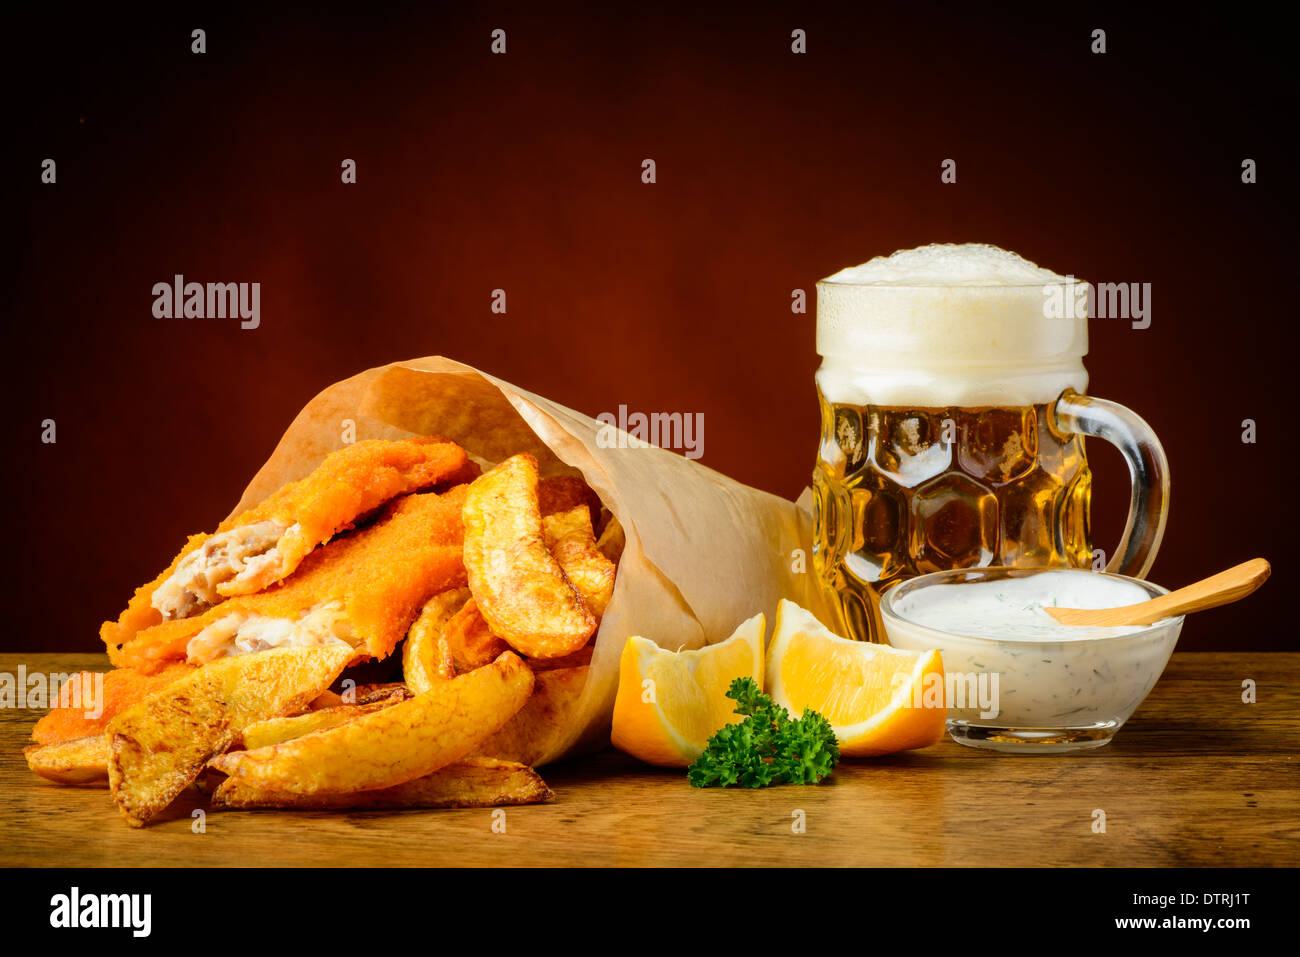 still life with traditional homemade fish, chips and beer - Stock Image